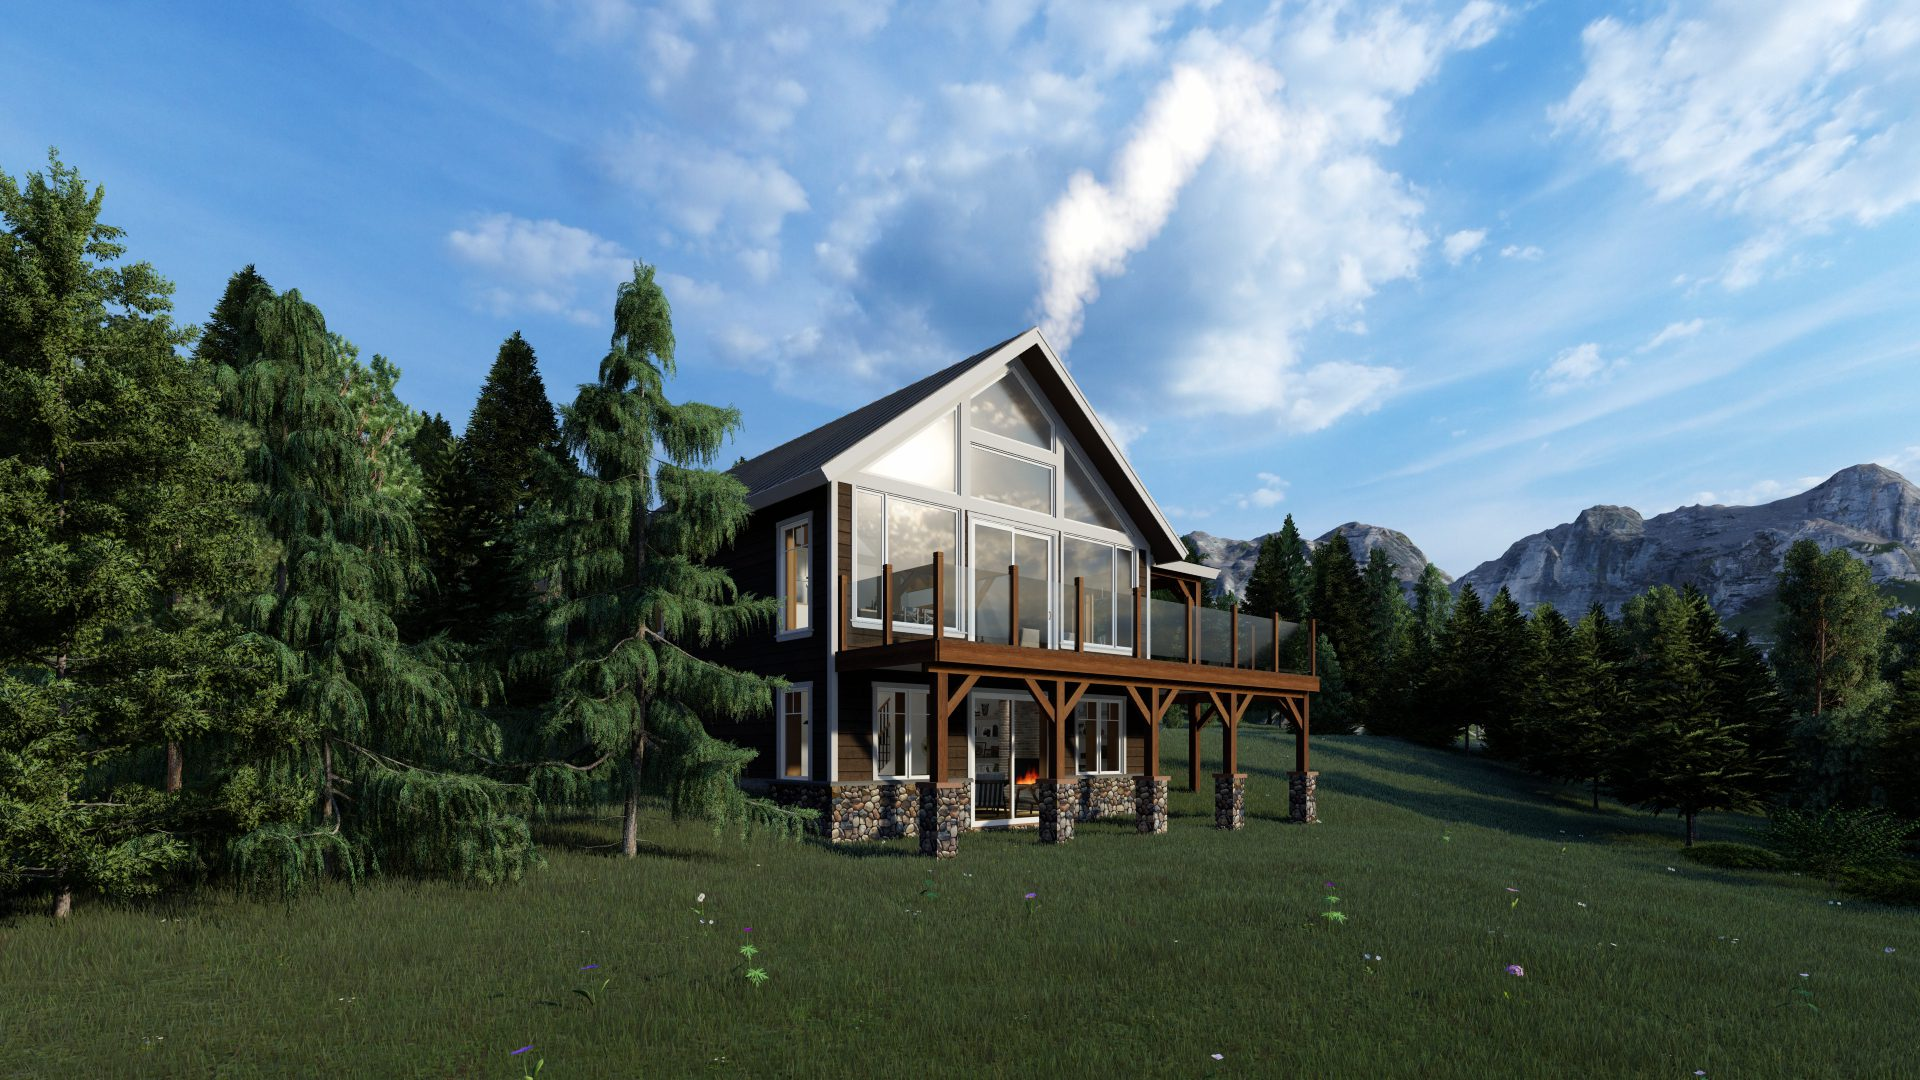 Timber Frame Open Concept House Plans   The Rouge   Normerica   Exterior, Side, Summer